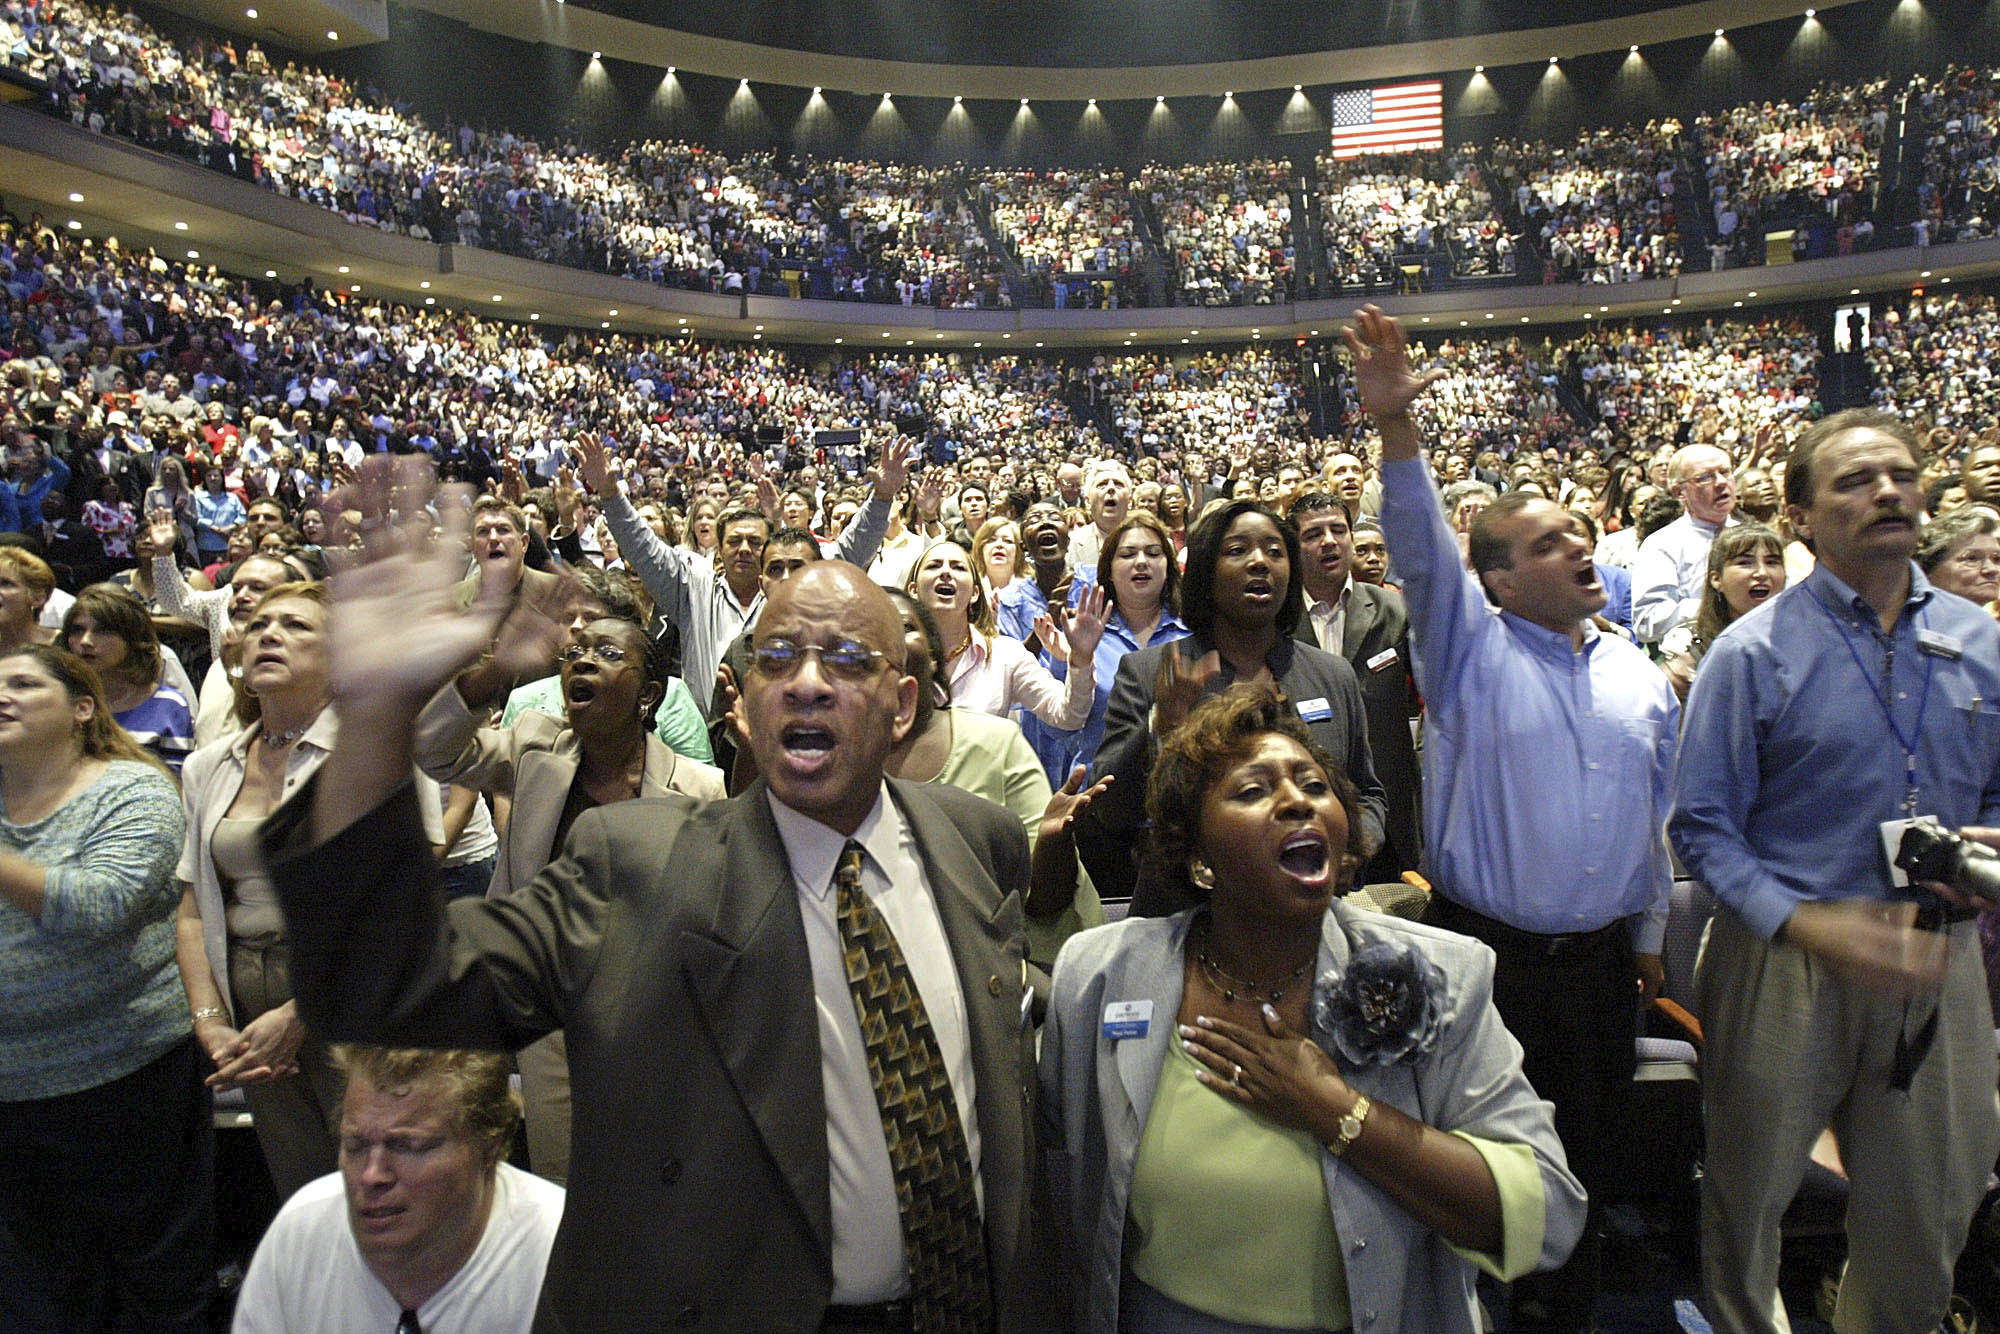 FILE - In this July 16, 2005, file photo, members of the Lakewood Church worship at the grand opening of their megachurch in Houston. Lakewood pastor Joel Osteen said in a statement to ABC News on Aug. 28, 2017, that his massive church would open as a shelter for Hurricane Harvey victims if needed. (AP Photo/Jessica Kourkounis, File)